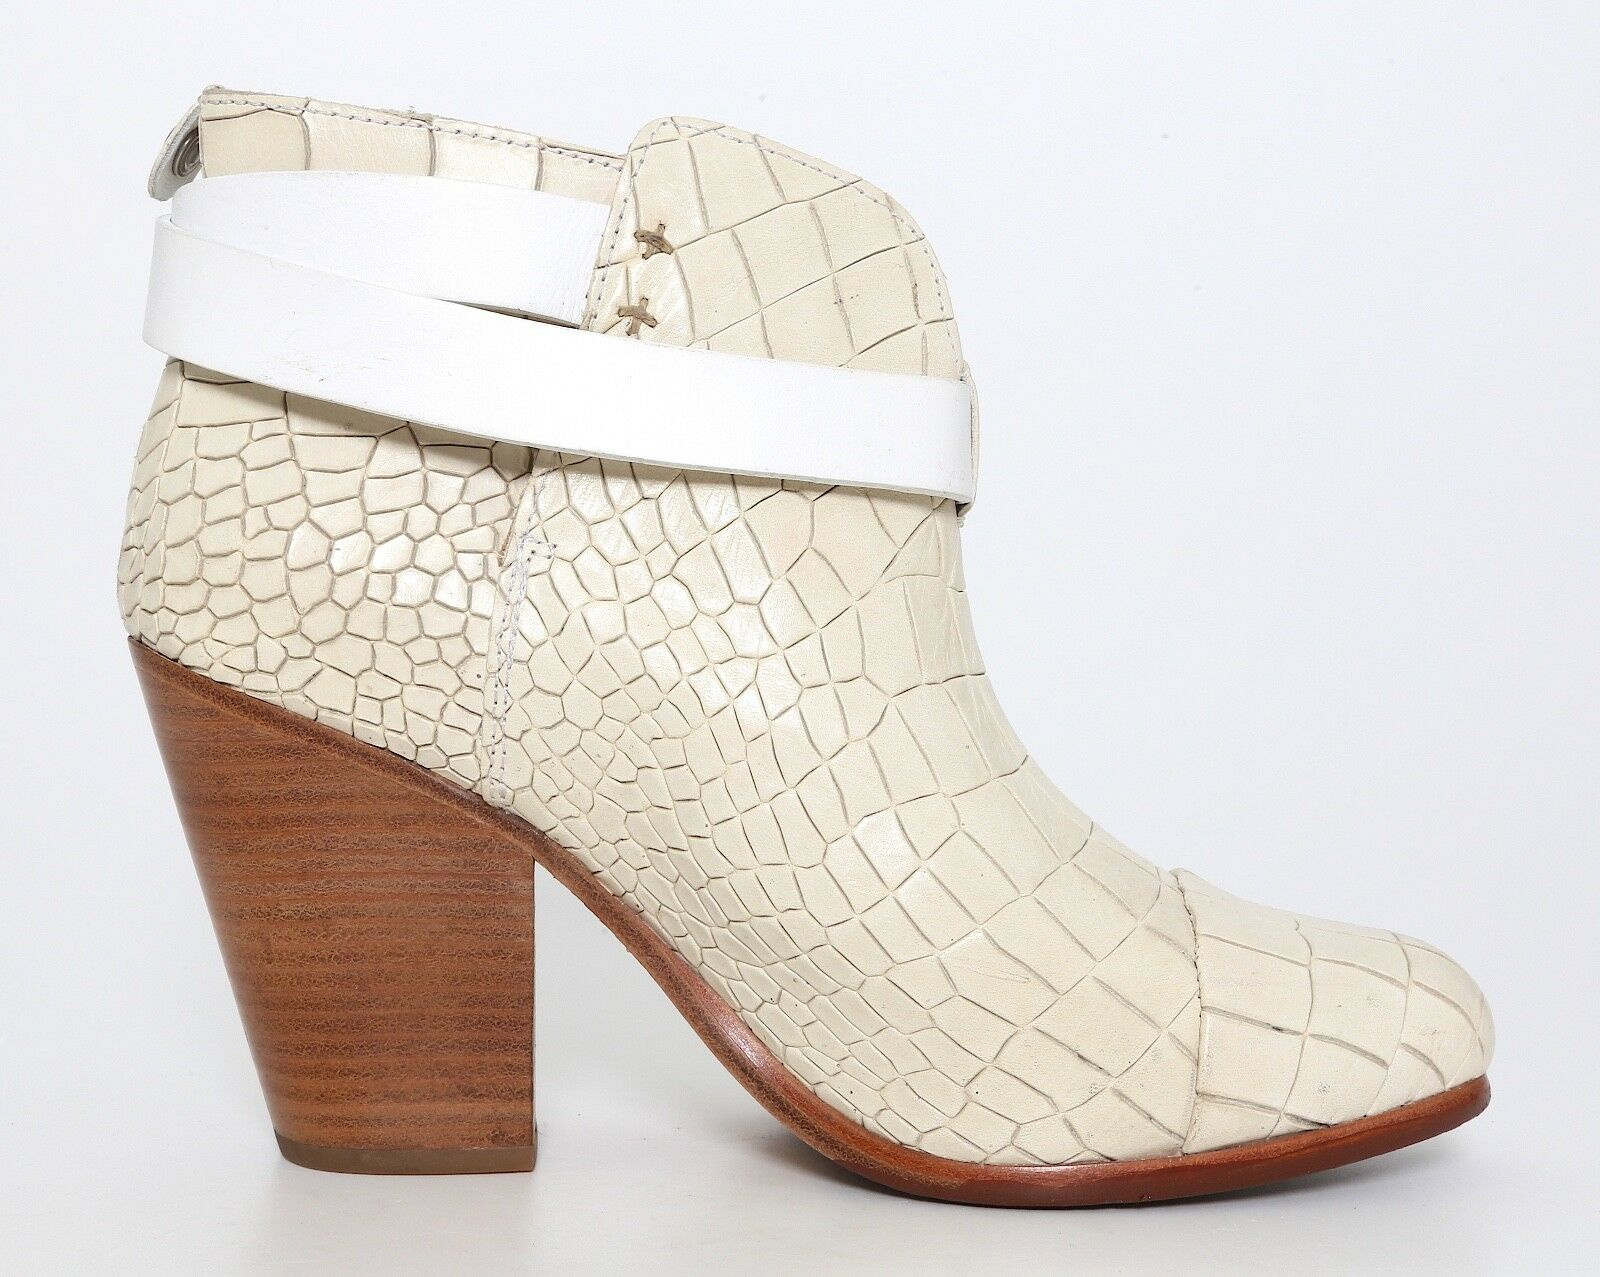 Rag & Bone Harrow Harrow Harrow Crocodile Embossed Ankle Boots Ivory Women Sz 38 EUR 5026 90f7f5